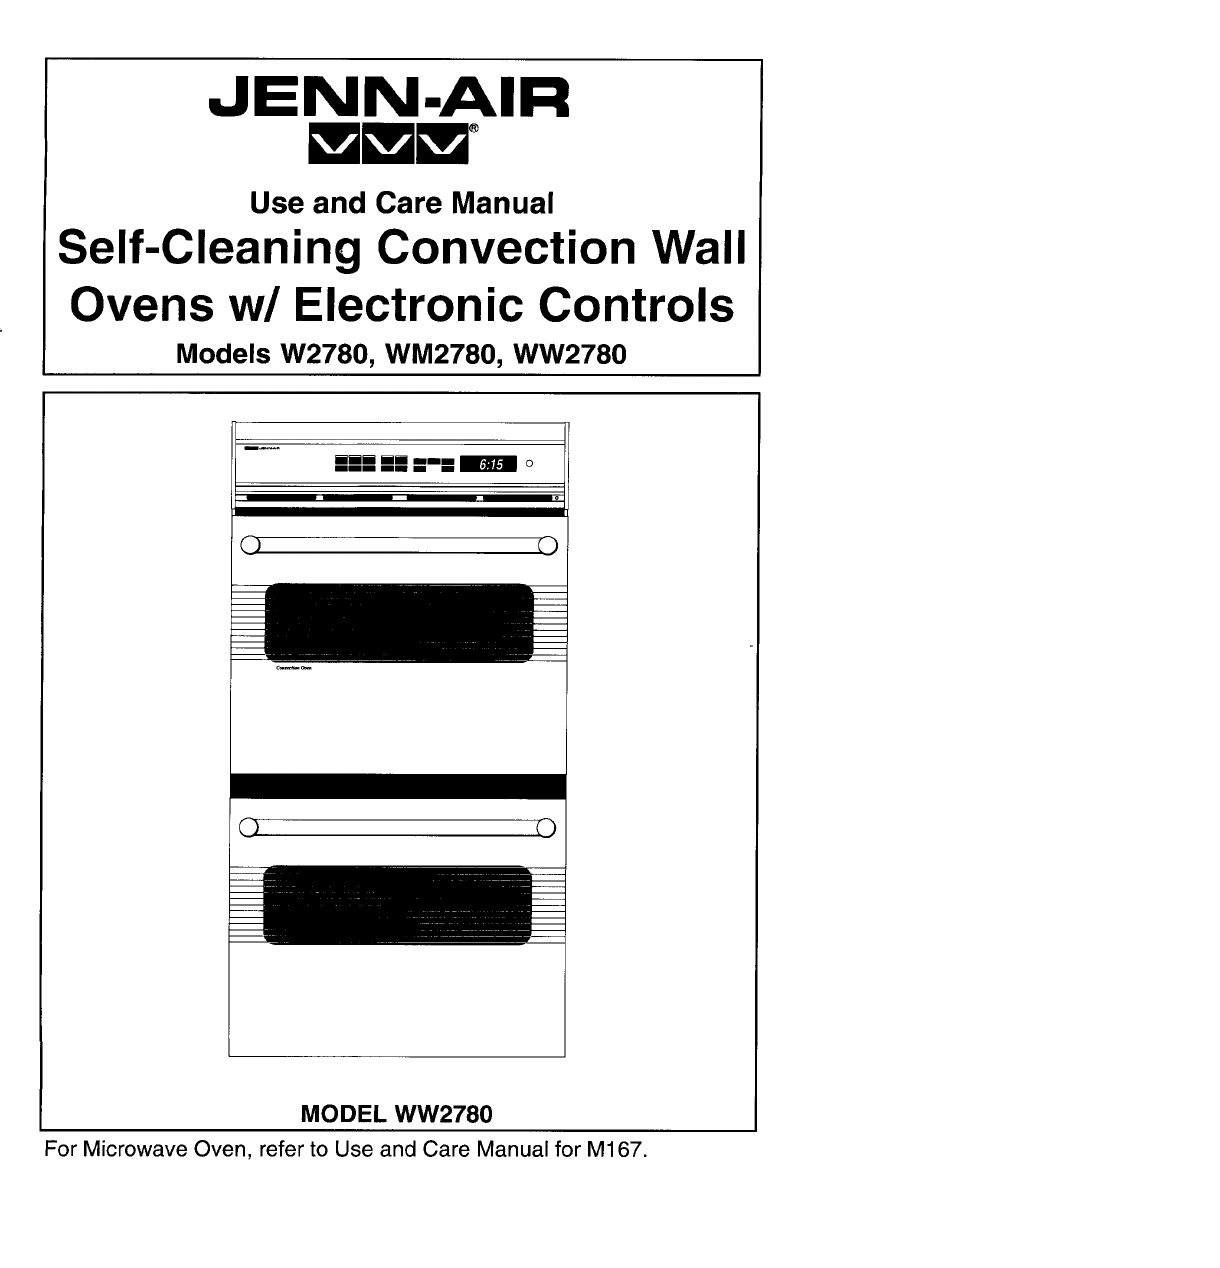 jenn air convection oven wm2780 user guide manualsonline com rh kitchen manualsonline com Jenn-Air Double Wall Oven Models Jenn-Air Dual Fuel Double Oven